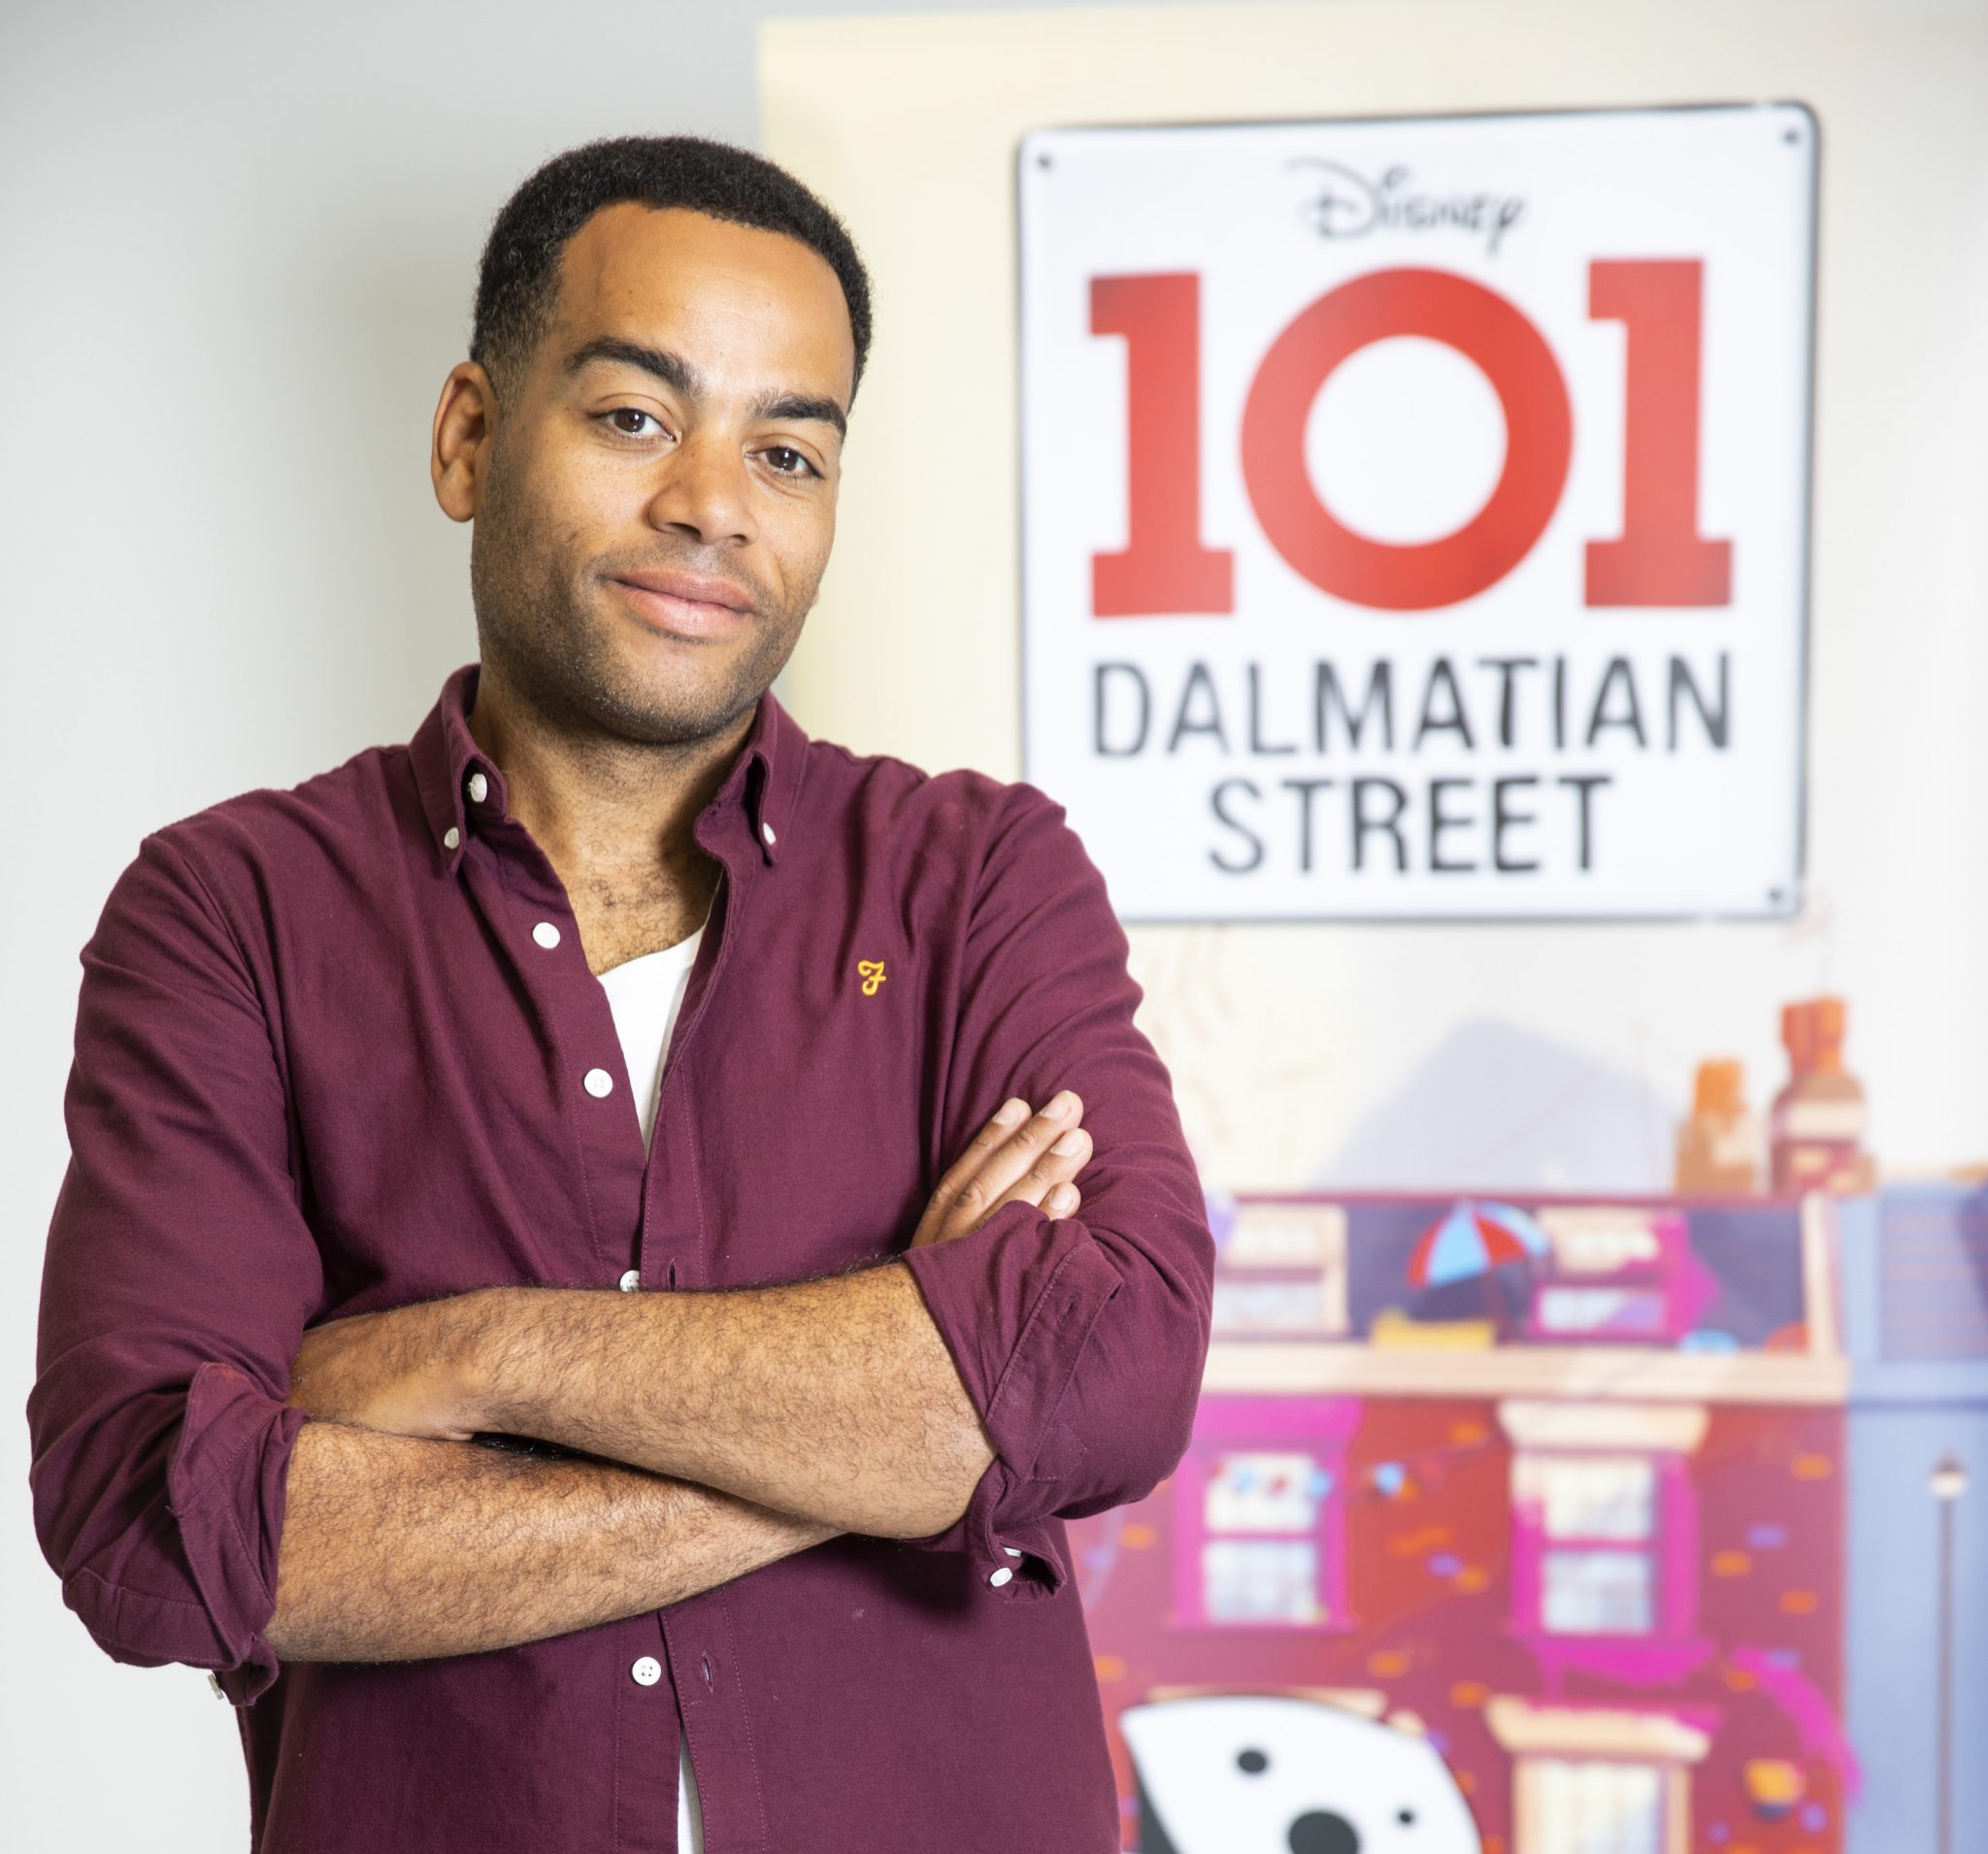 CAST ANNOUNCEMENT AND UNIT PR FOR 101 DALMATIAN STREET